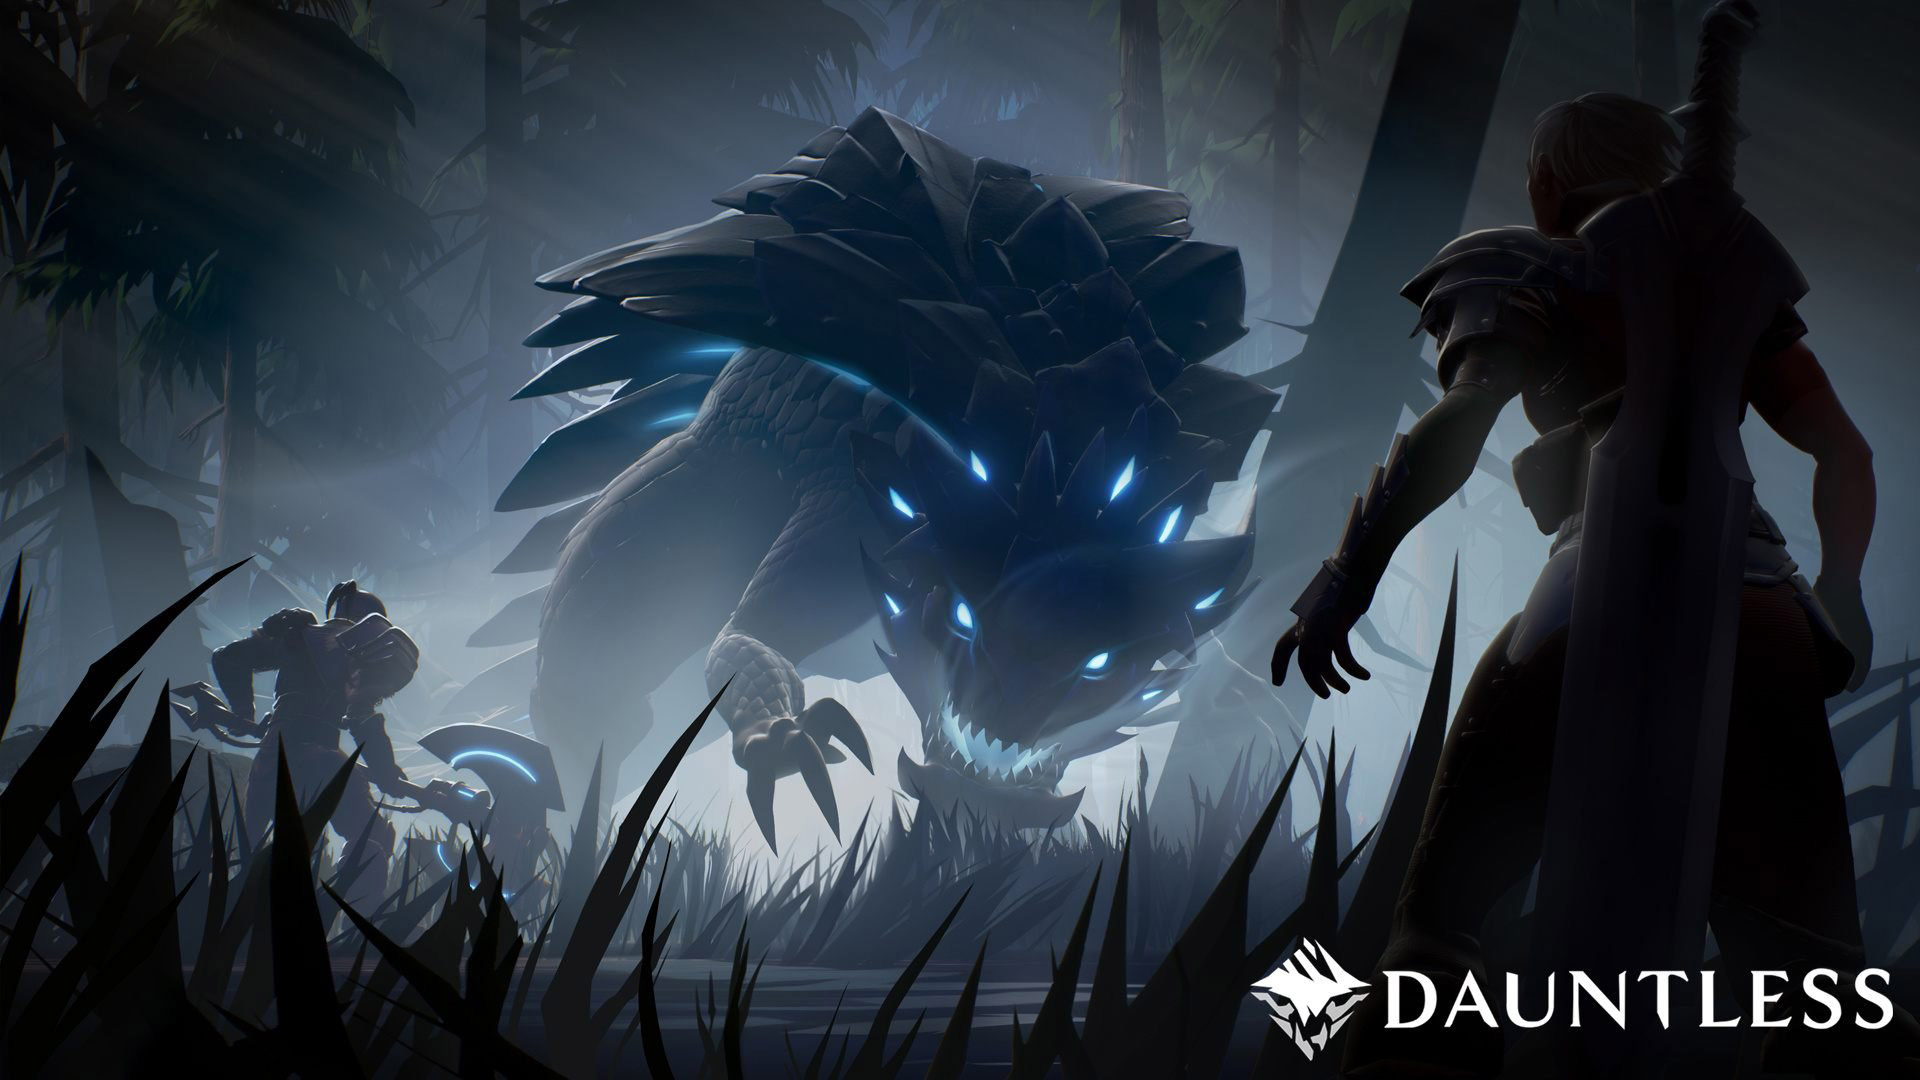 Free Dauntless Wallpaper in 1920x1080